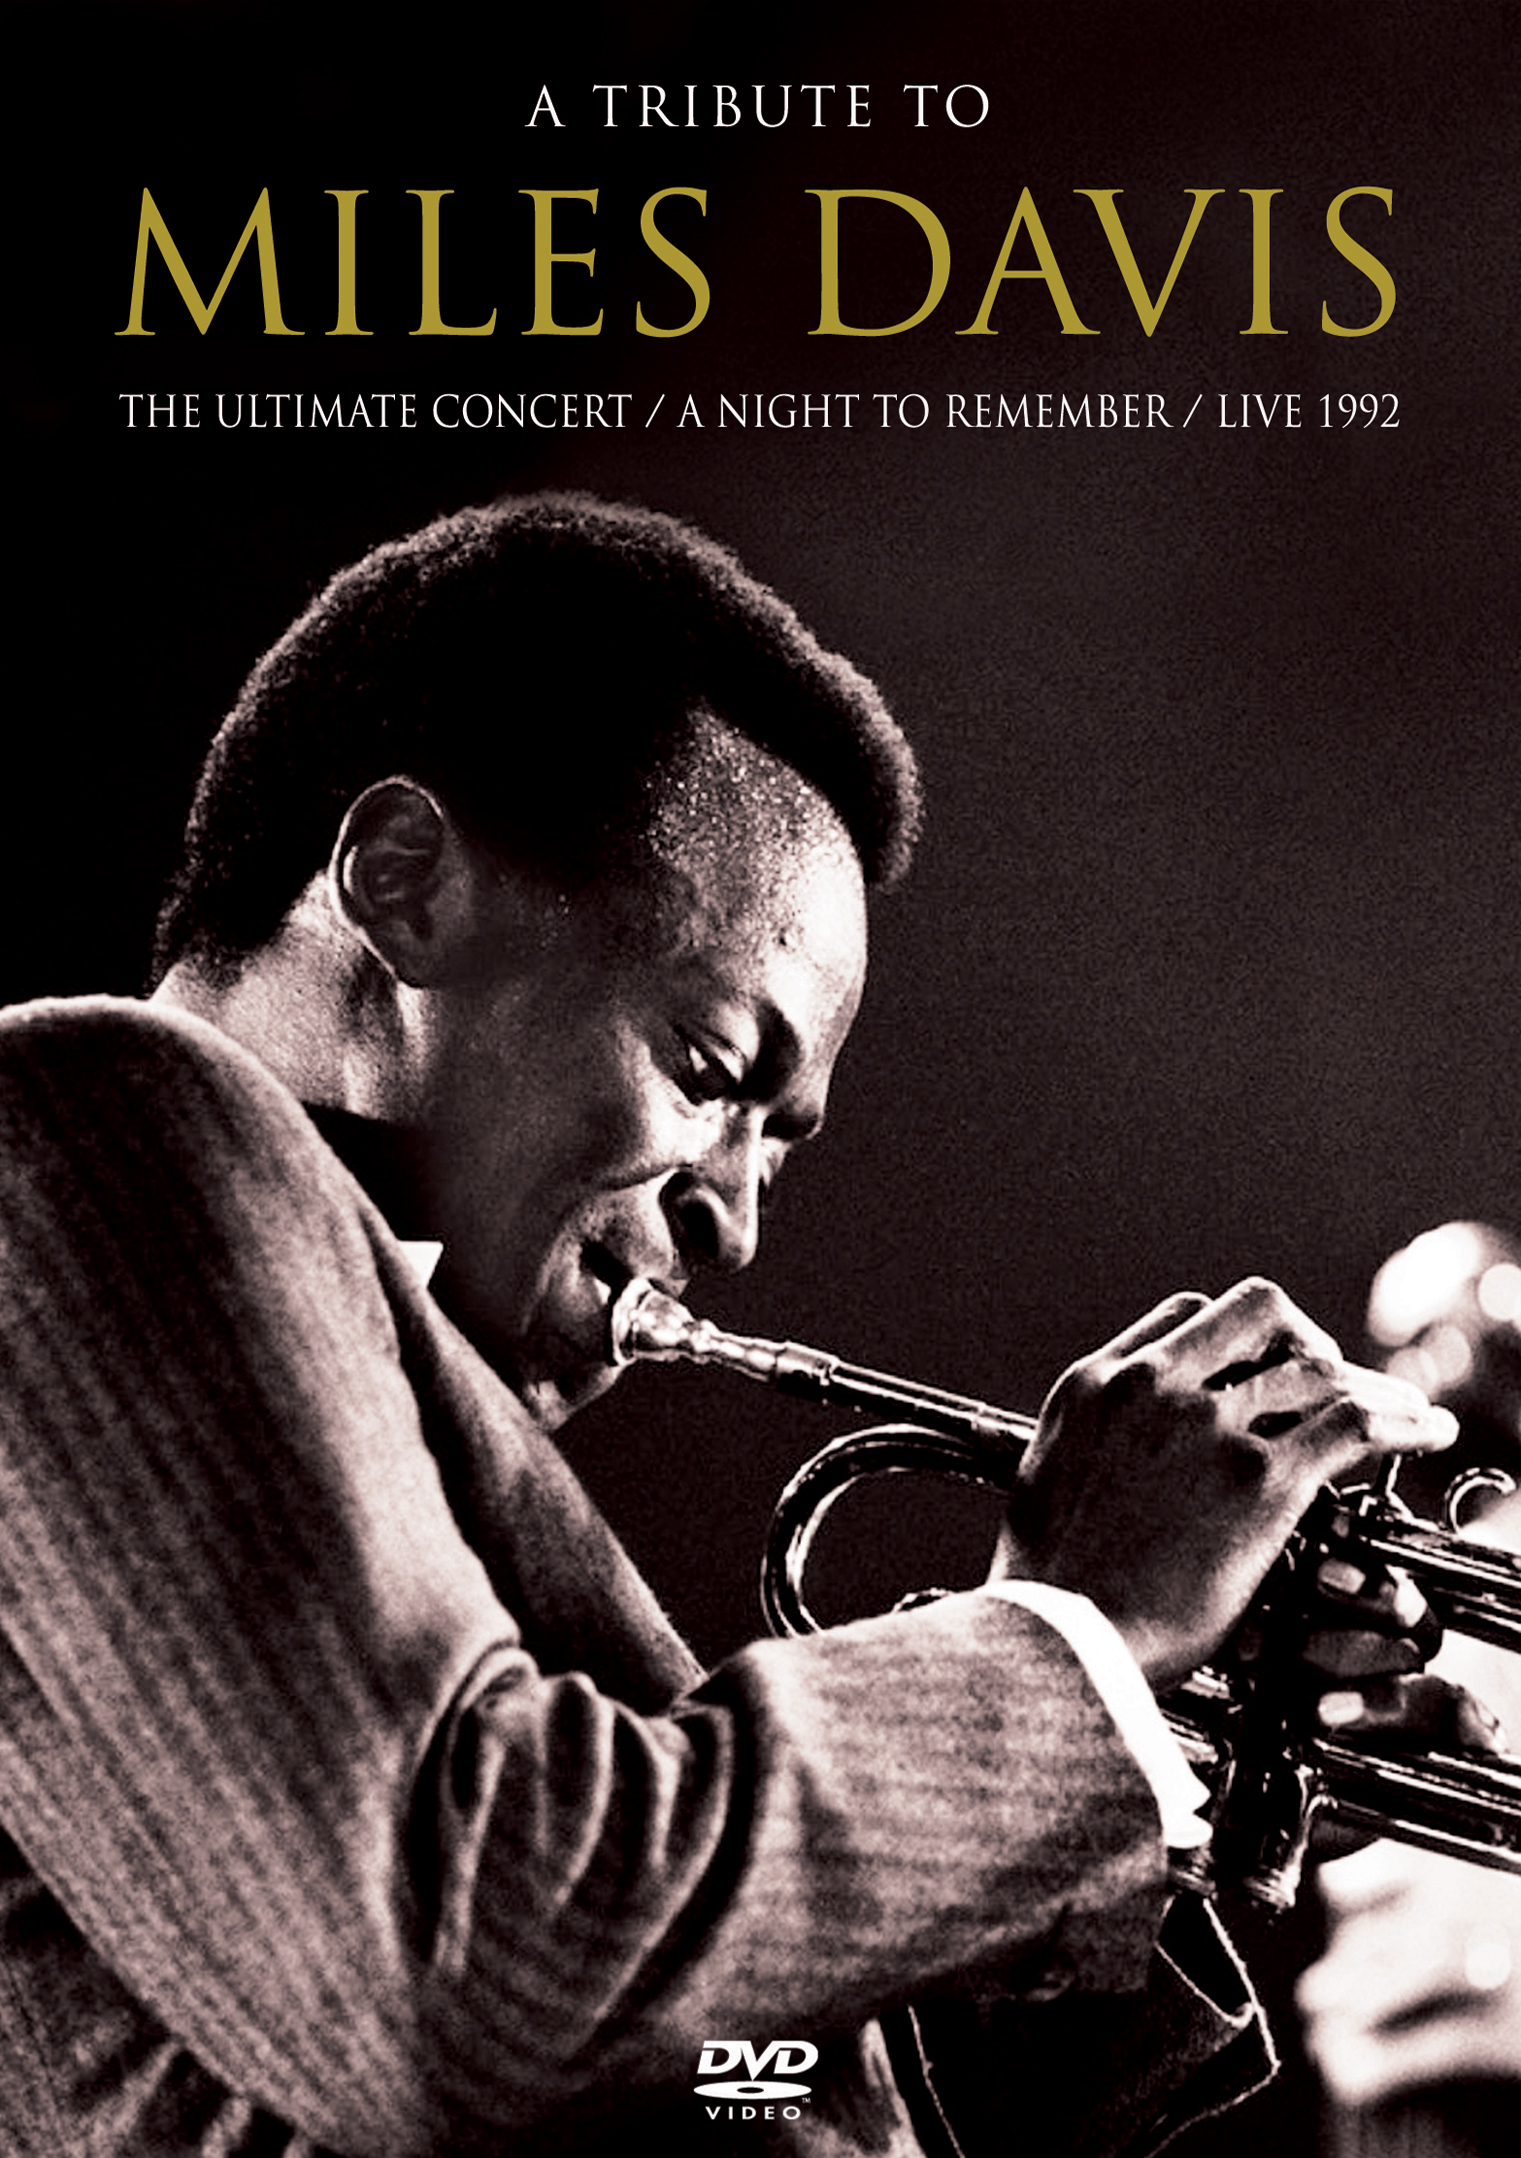 A Tribute to Miles Davis: The Ultimate Concert - A Night to Remember